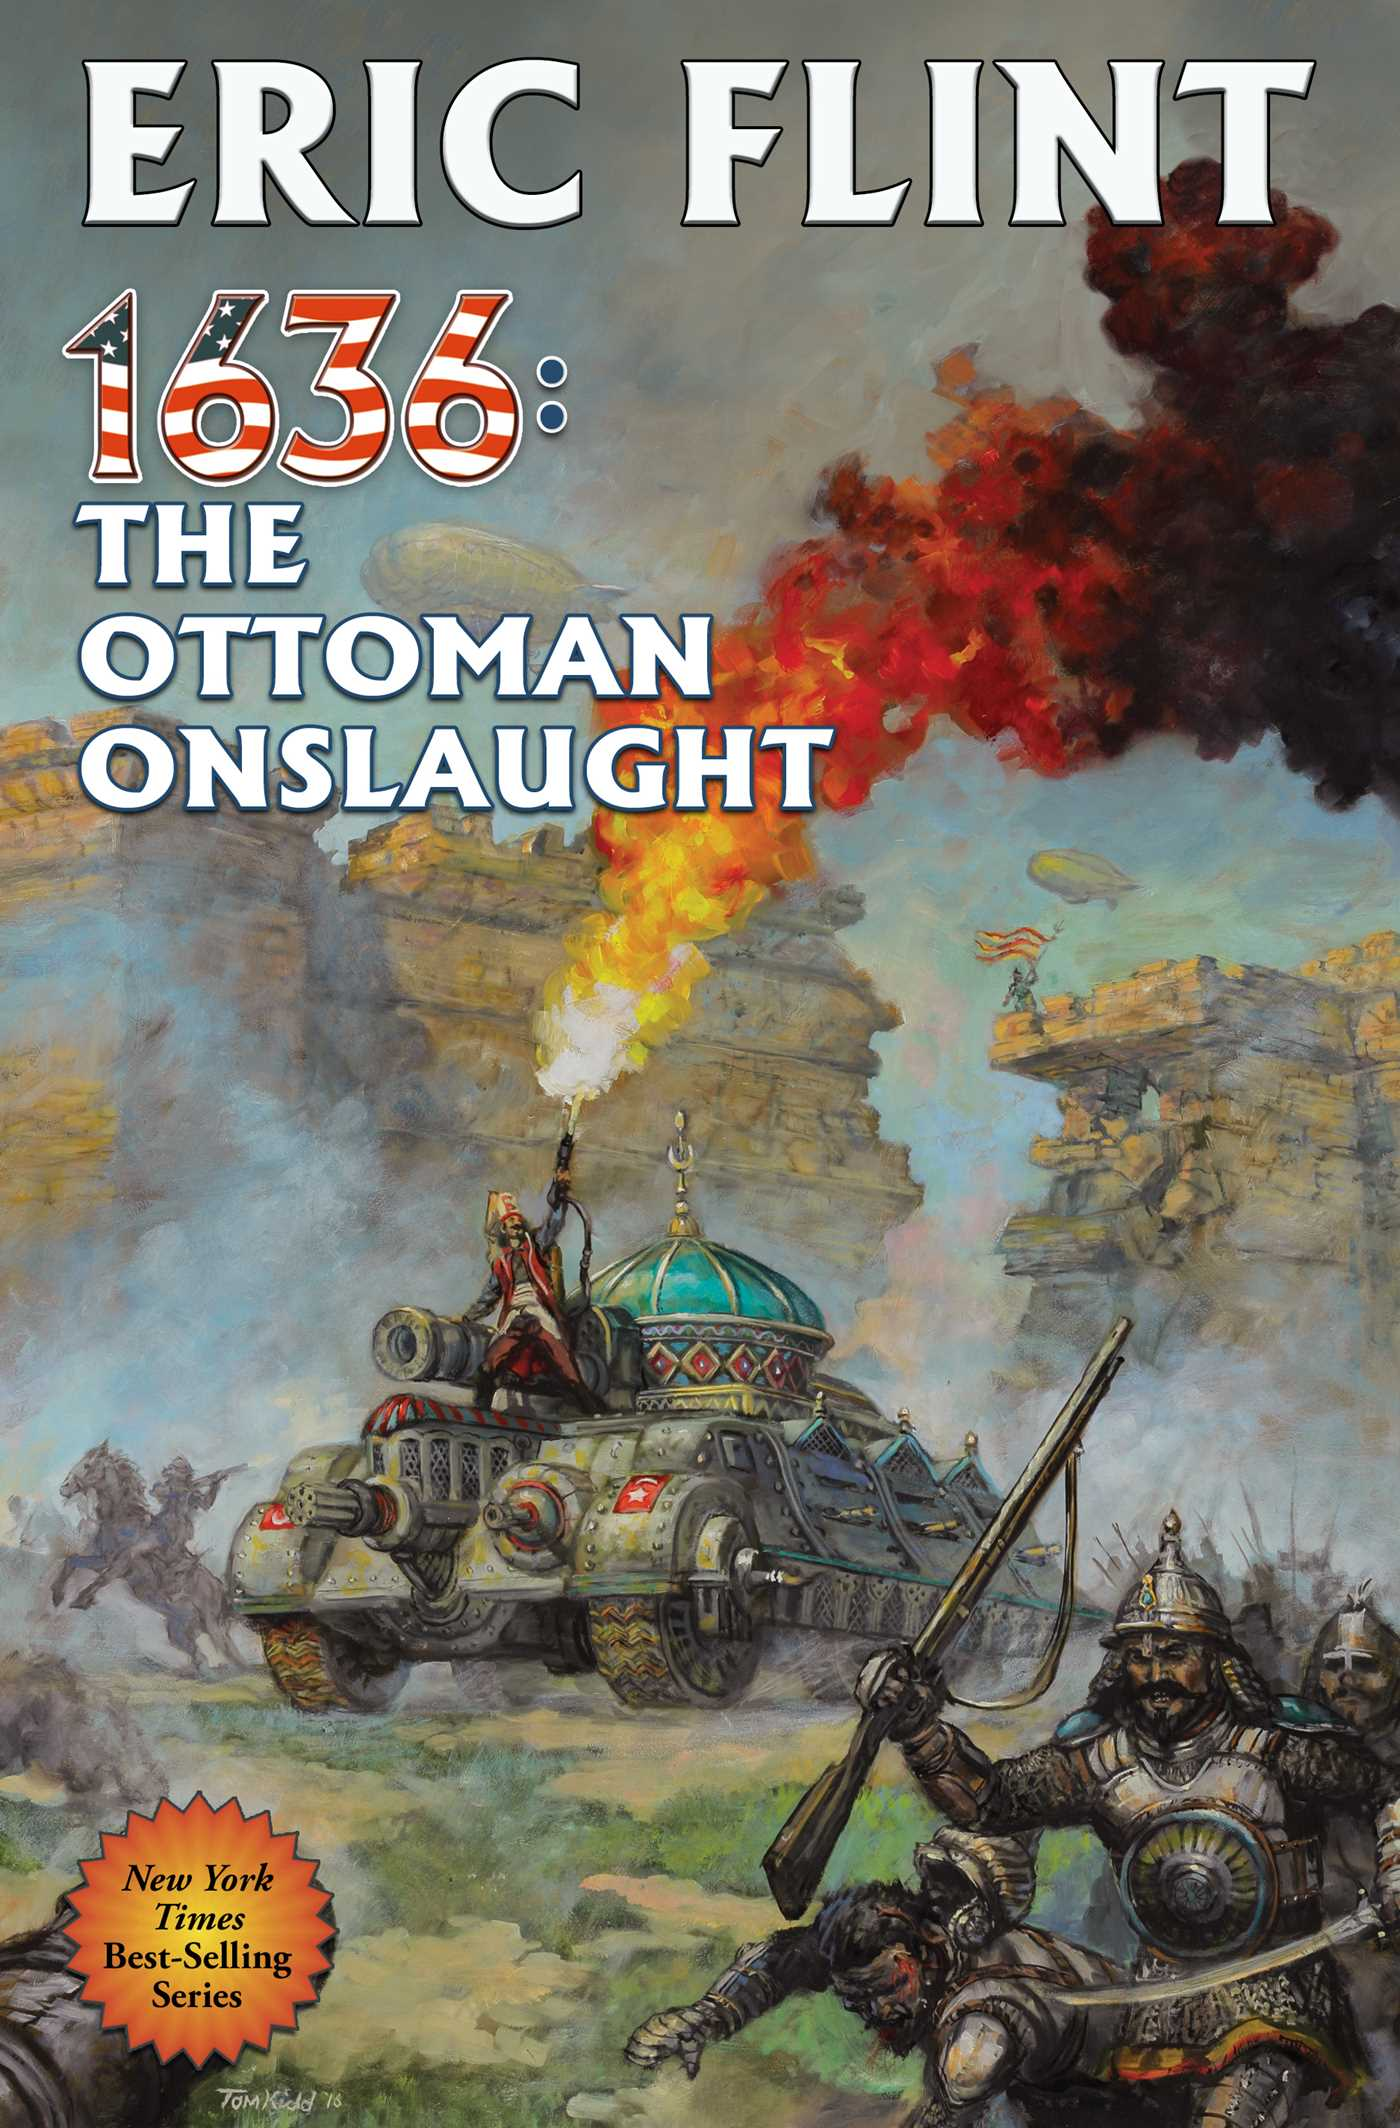 1636 the ottoman onslaught 9781476781846 hr